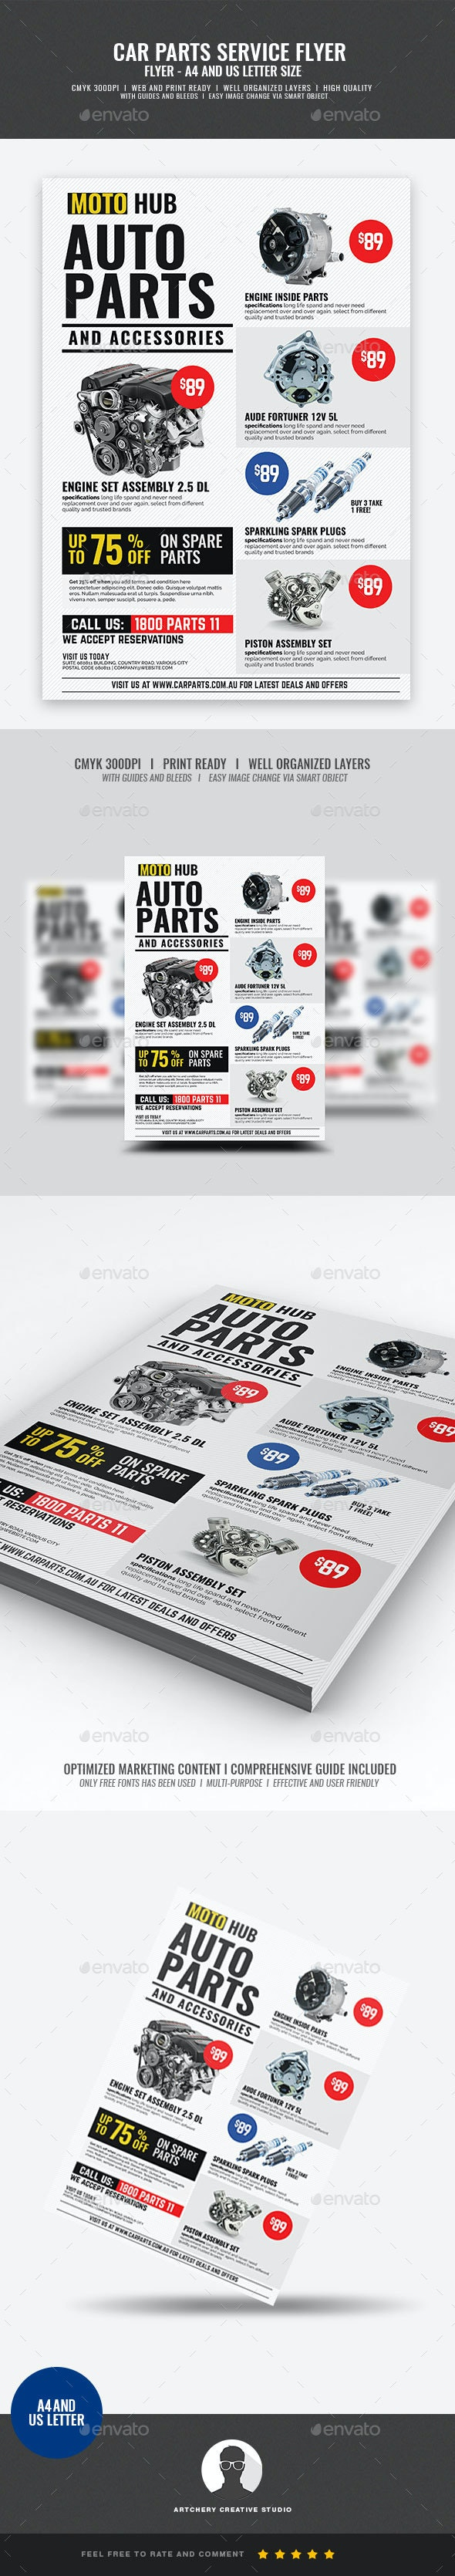 Auto Supply Center Flyer - Corporate Flyers